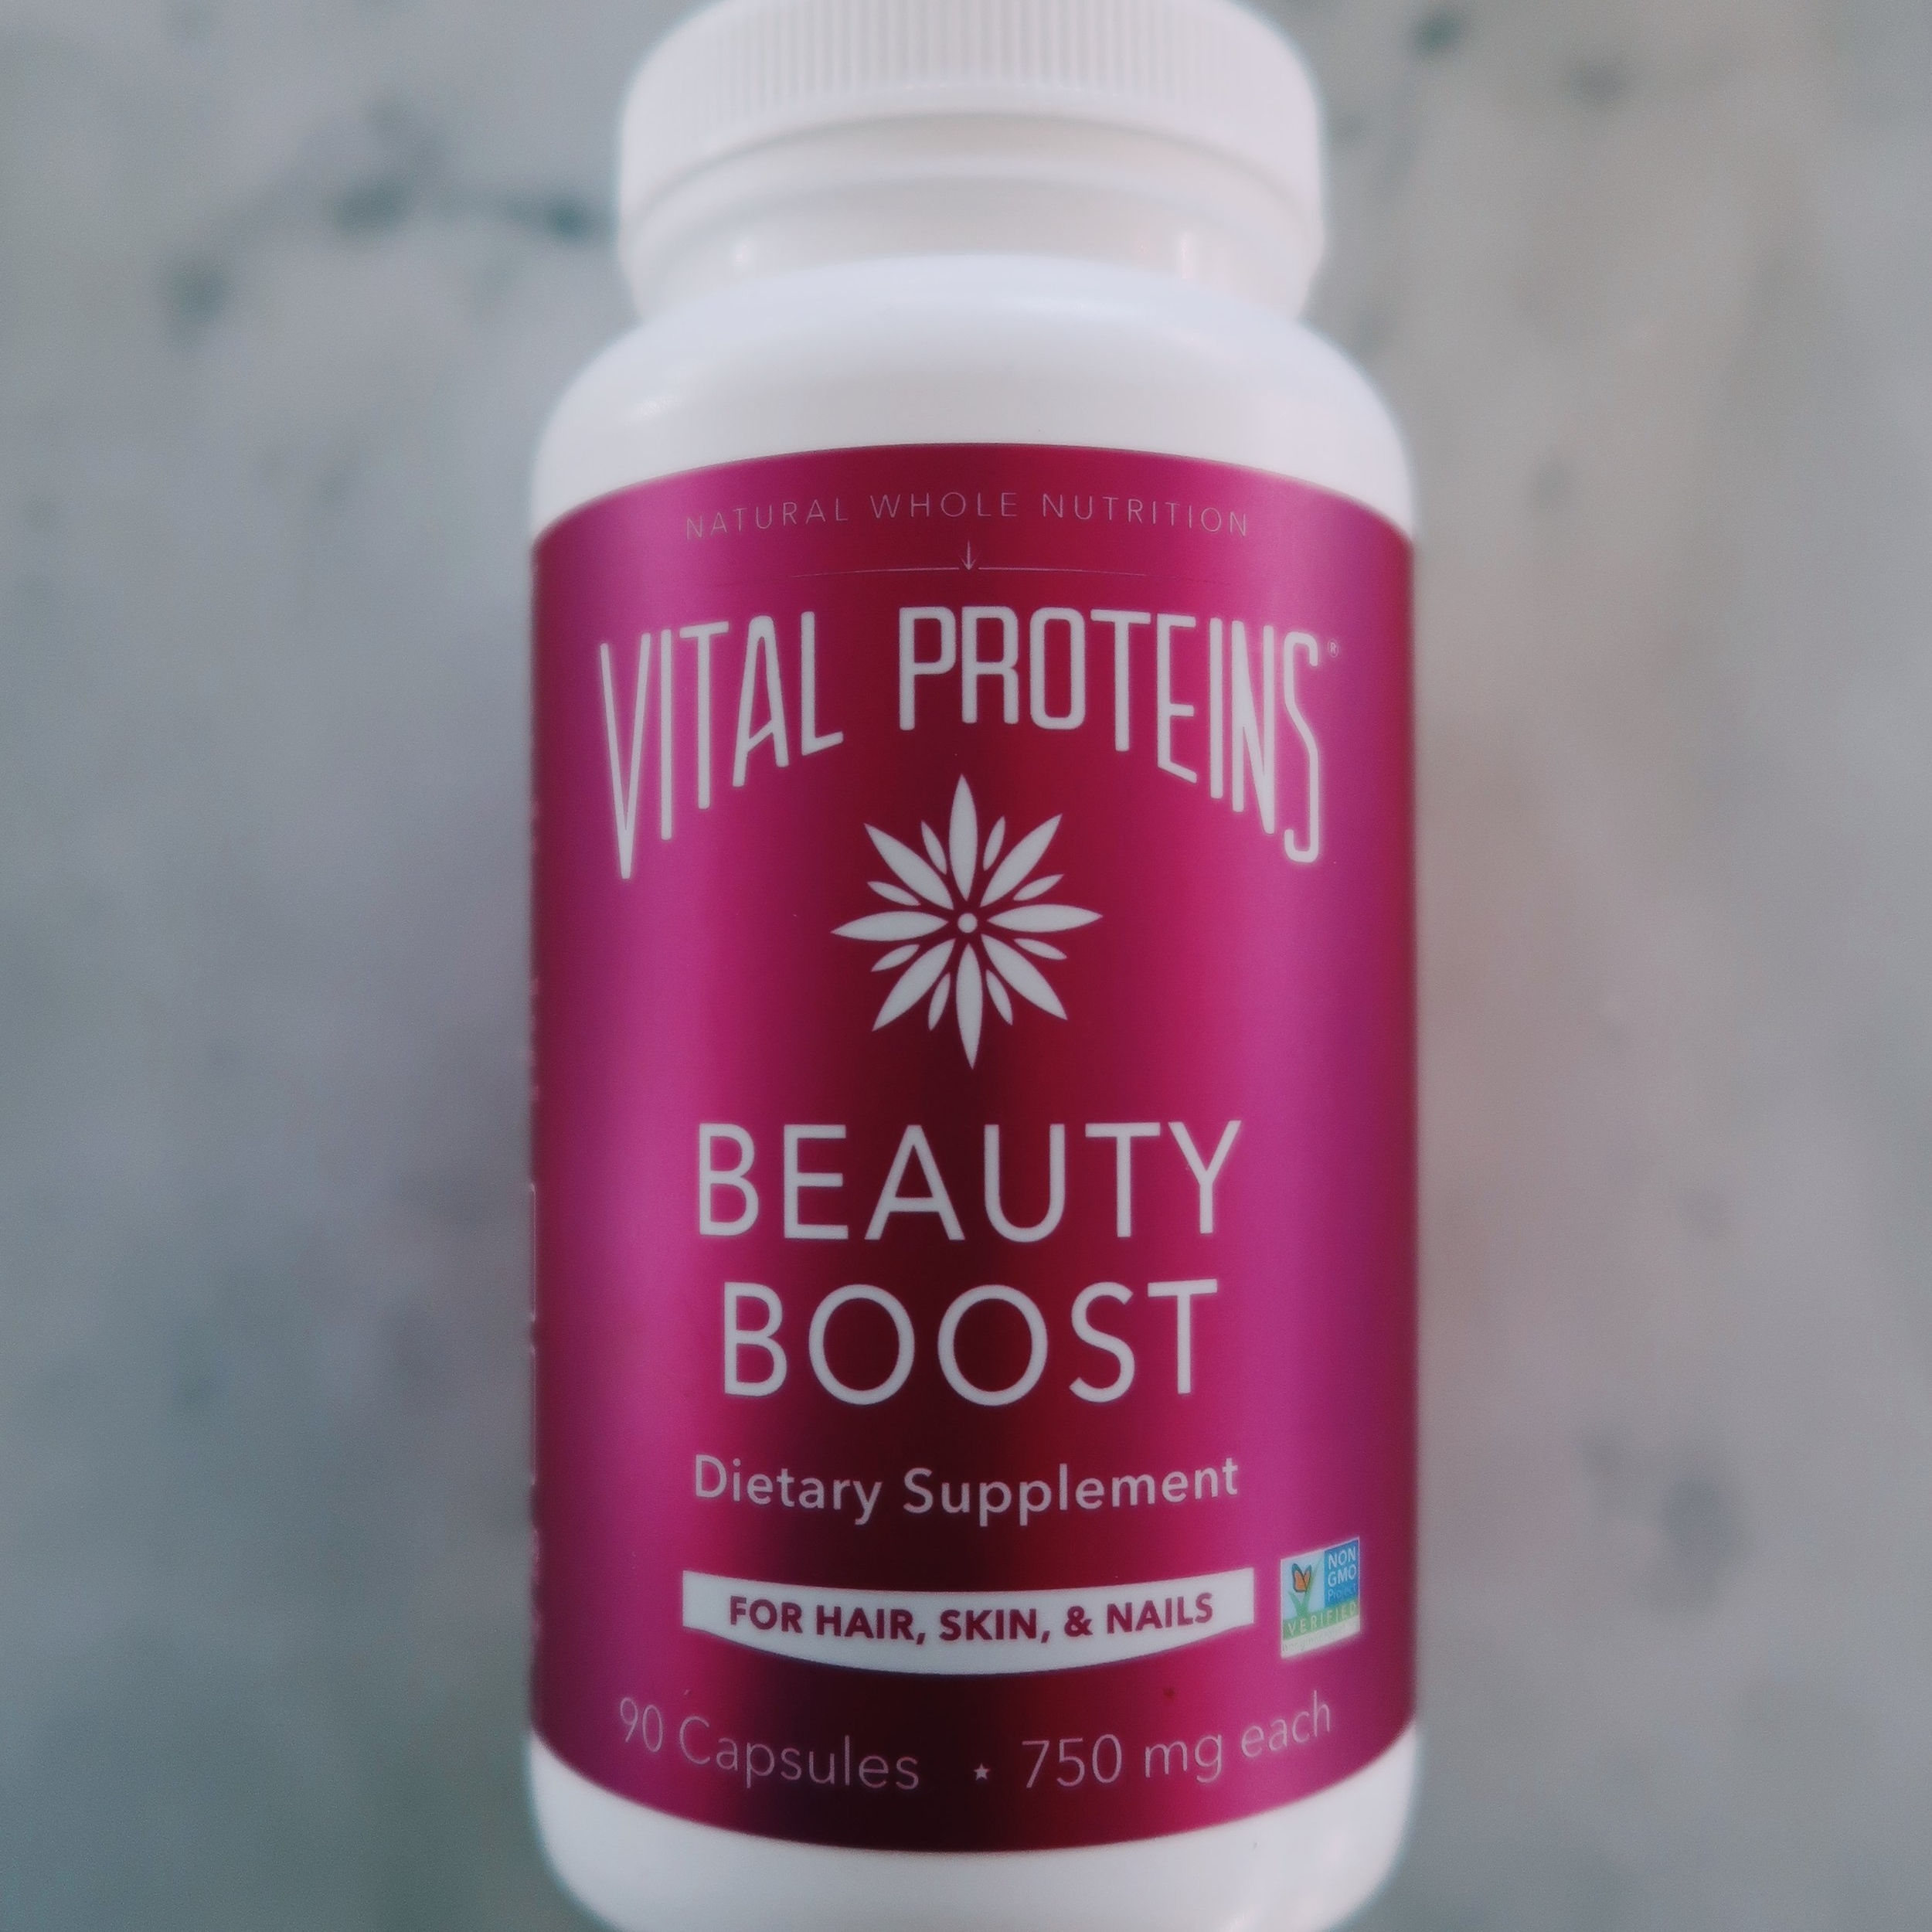 Vital Proteins Beauty Boost